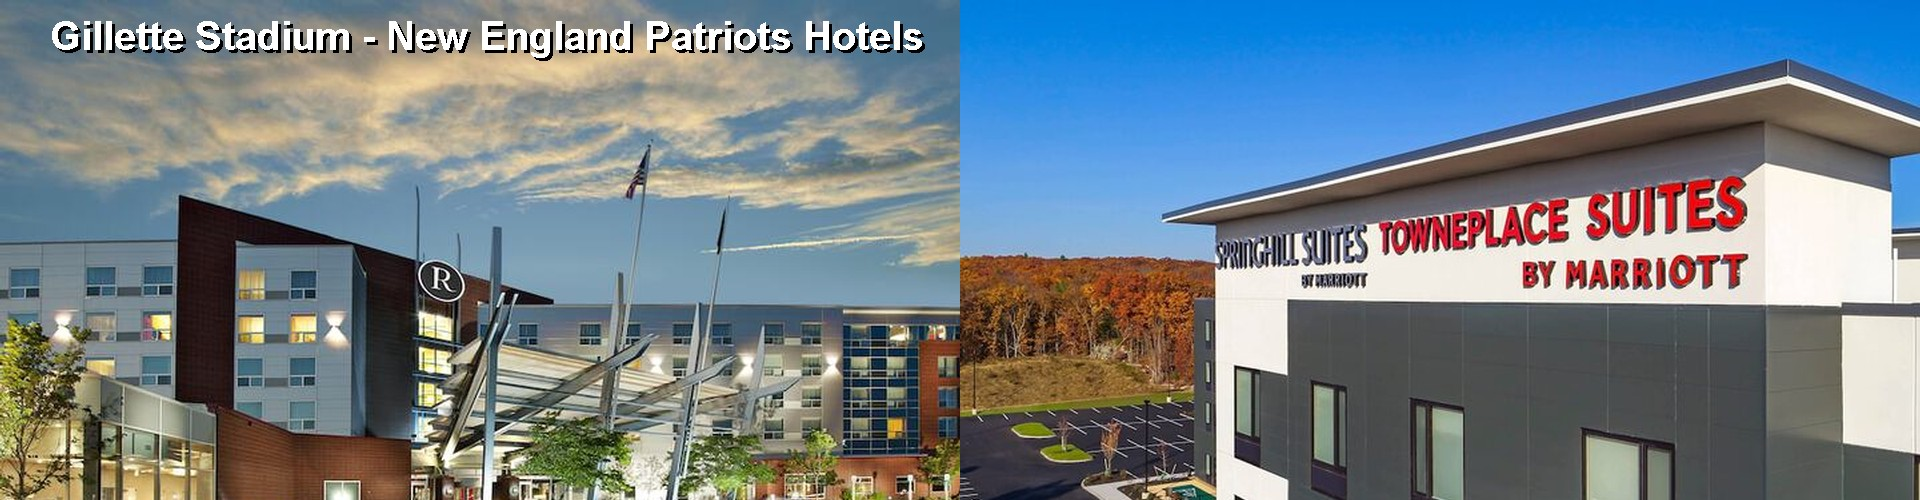 5 Best Hotels near Gillette Stadium - New England Patriots